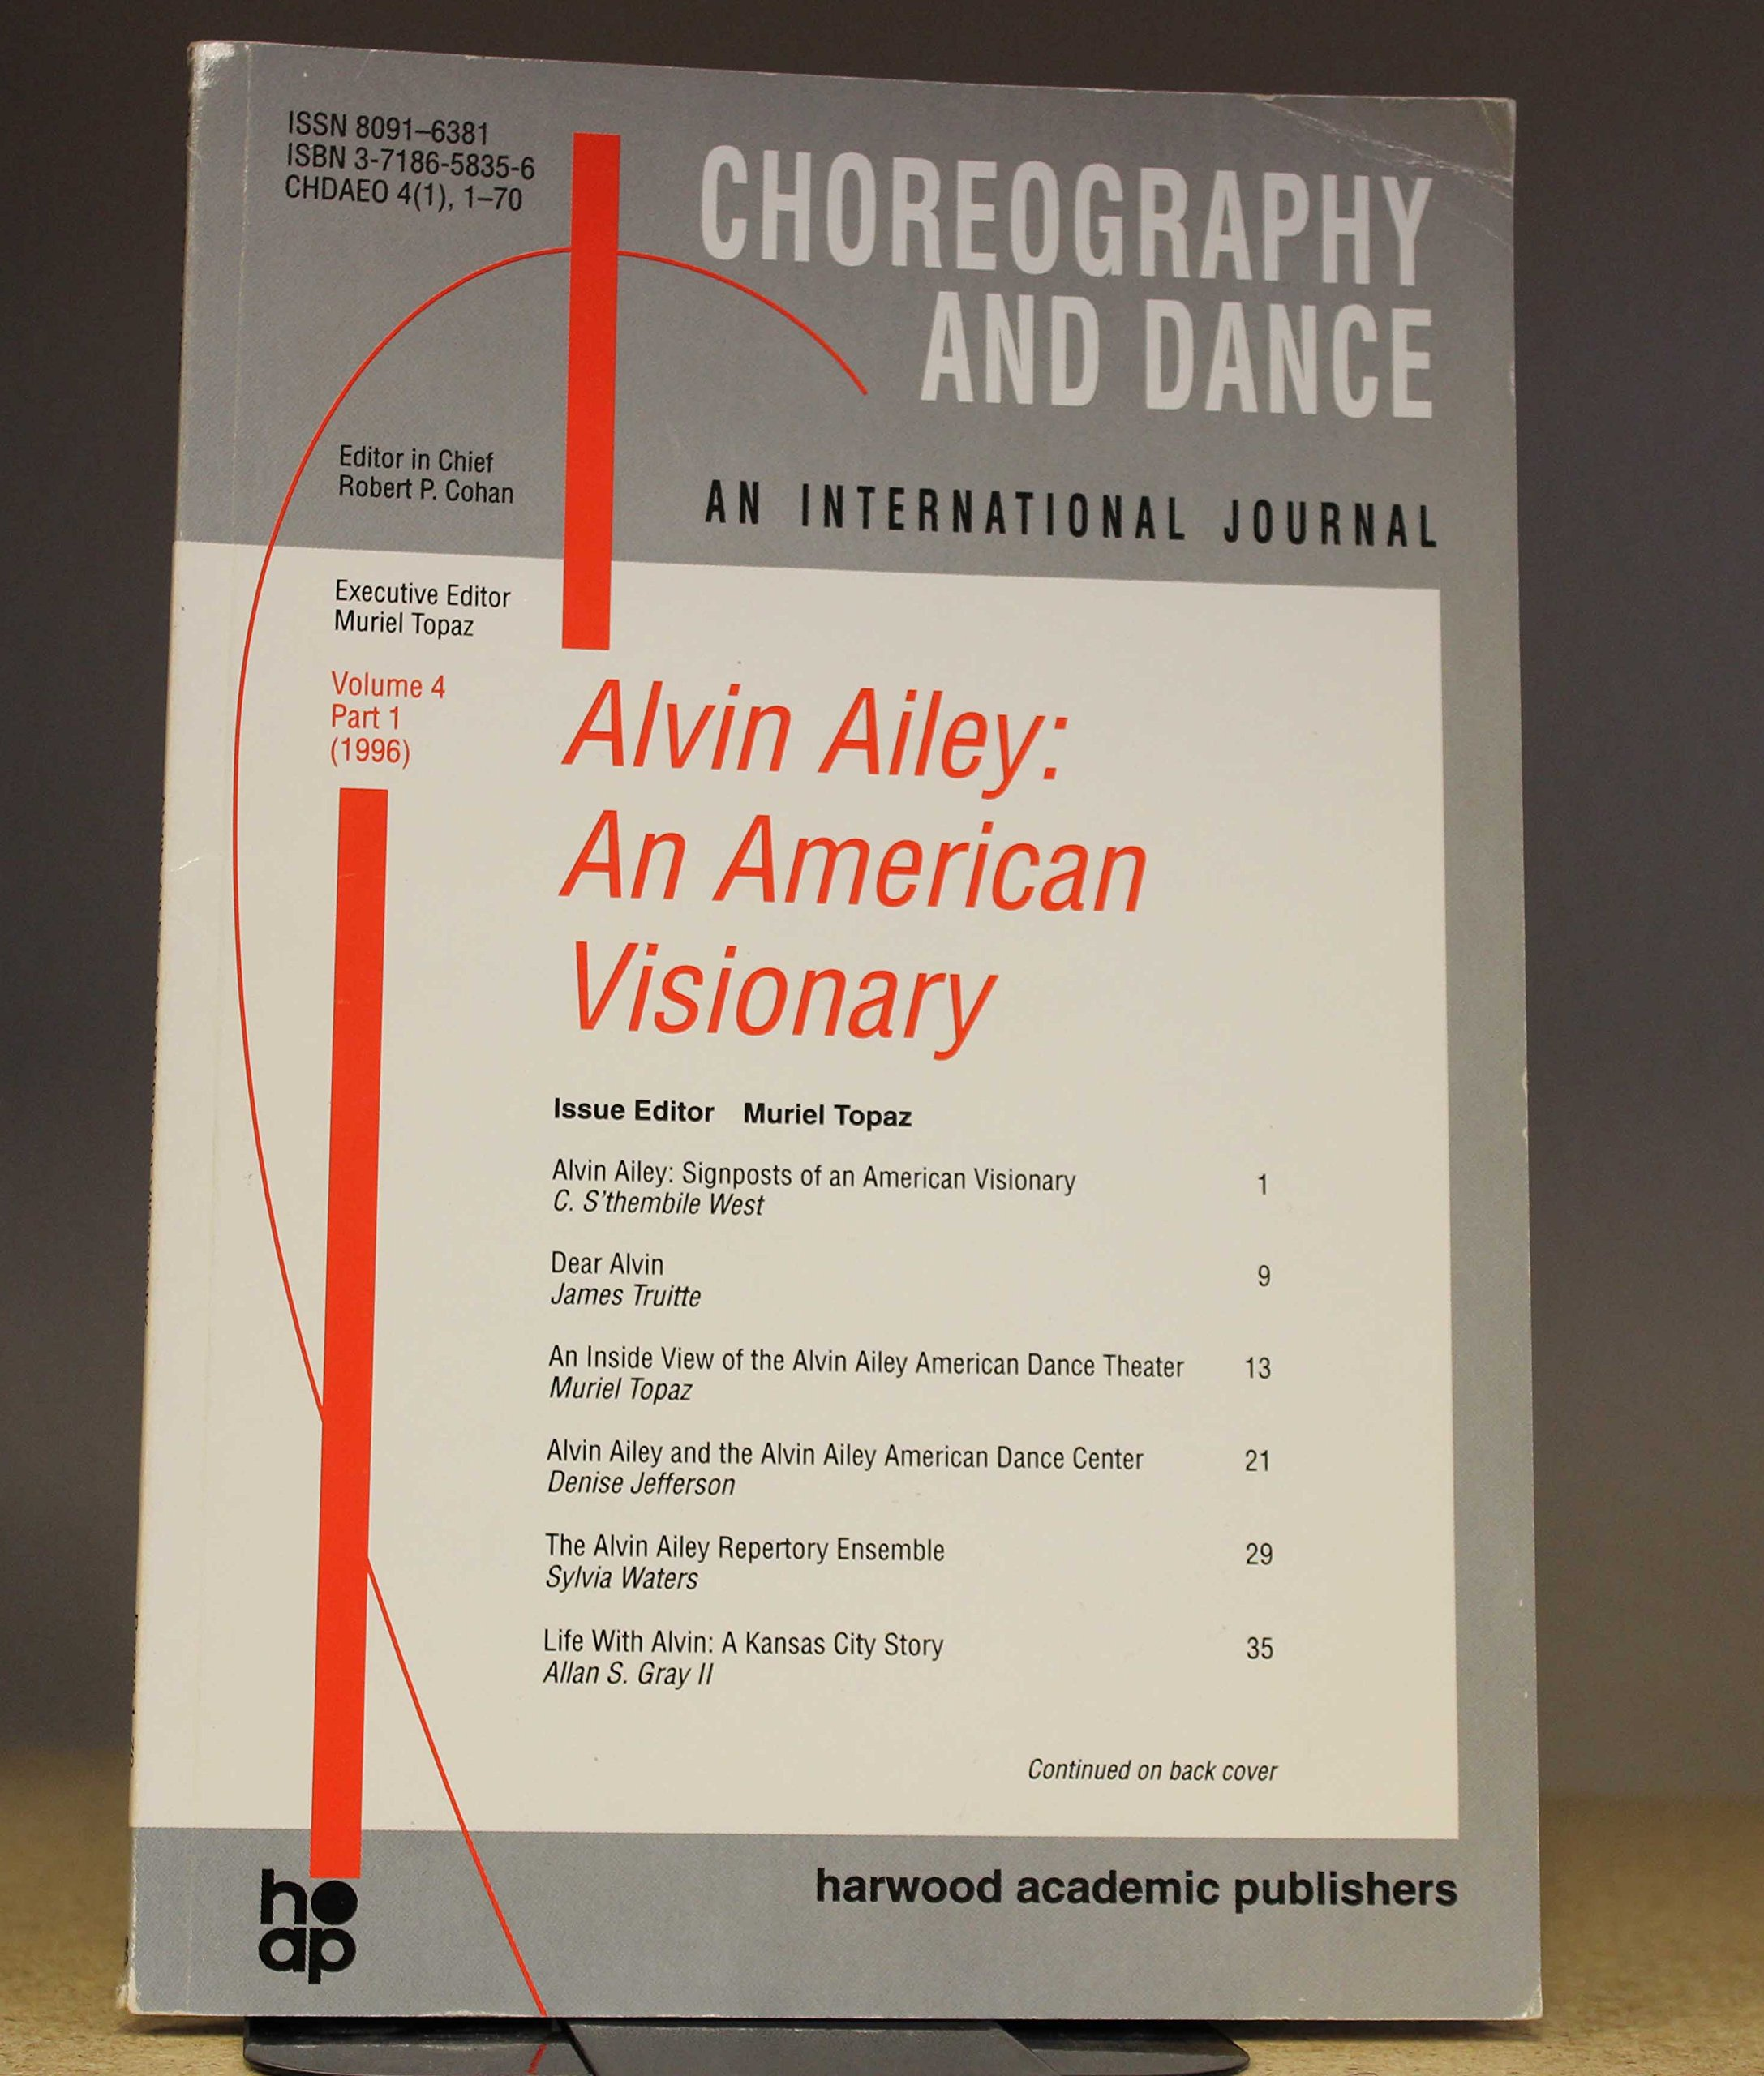 Alvin Ailey: An American Visionary (Choreography and Dance Studies Series)